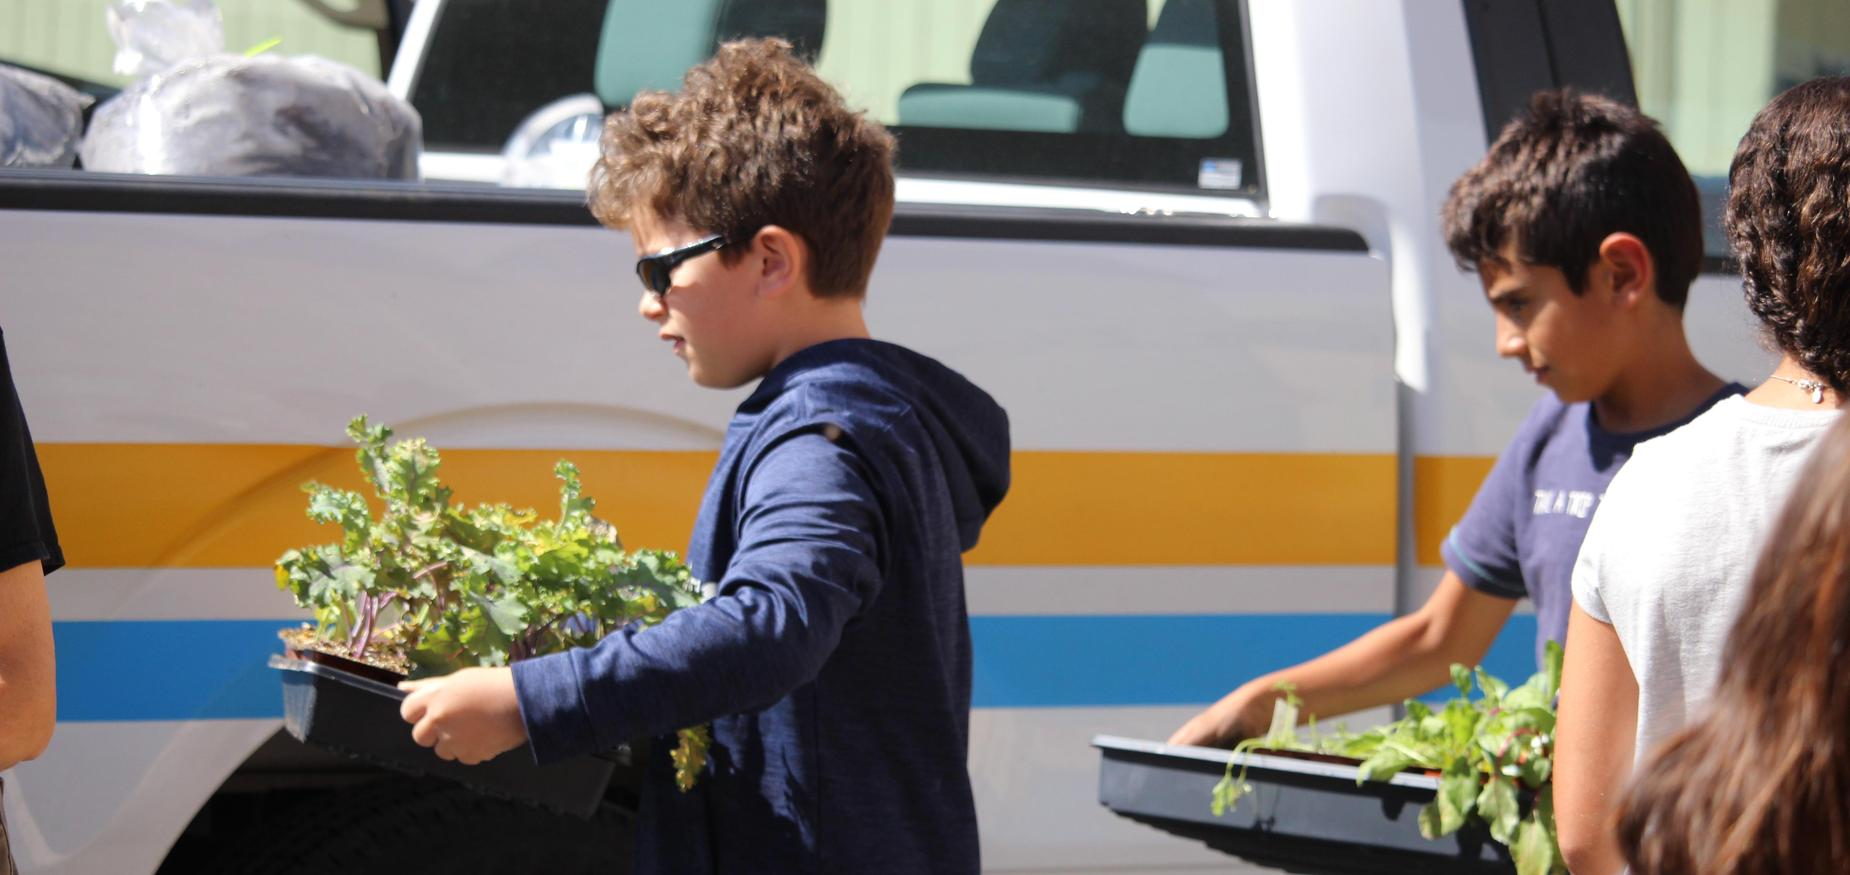 Students carrying plants for the garden box